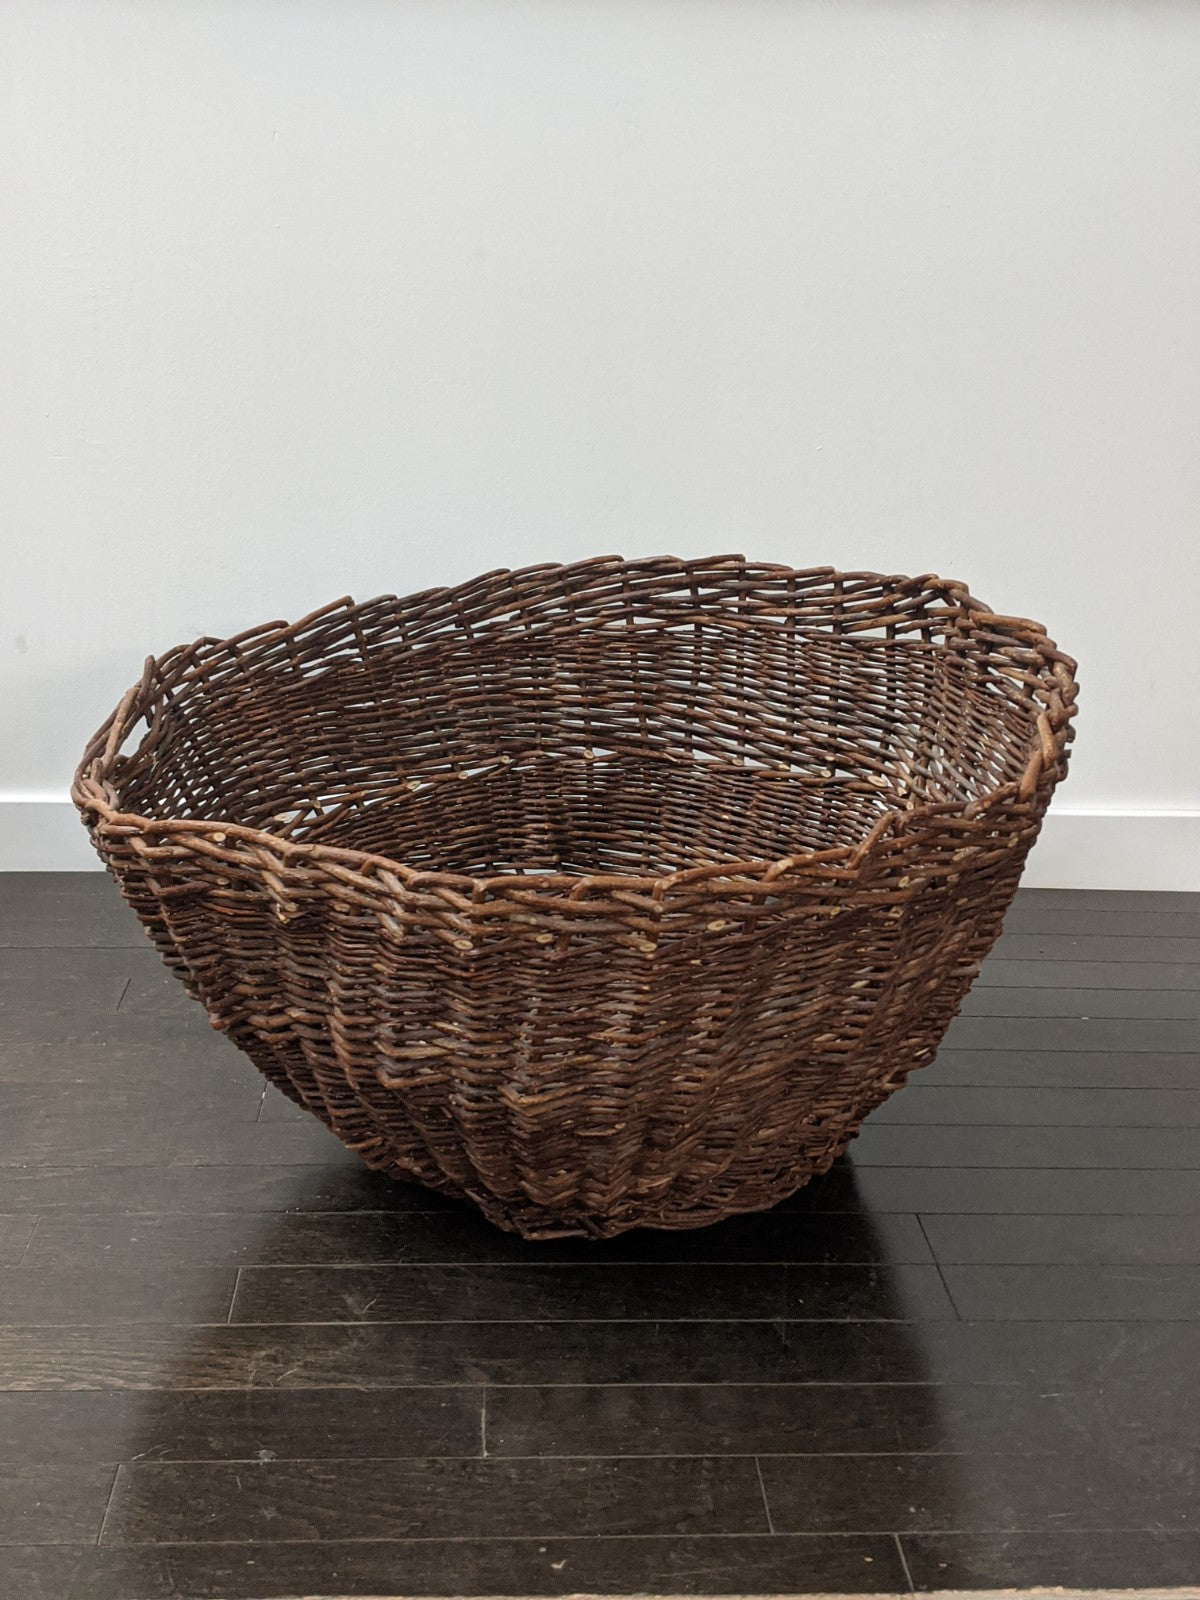 Massive Wicker Basket